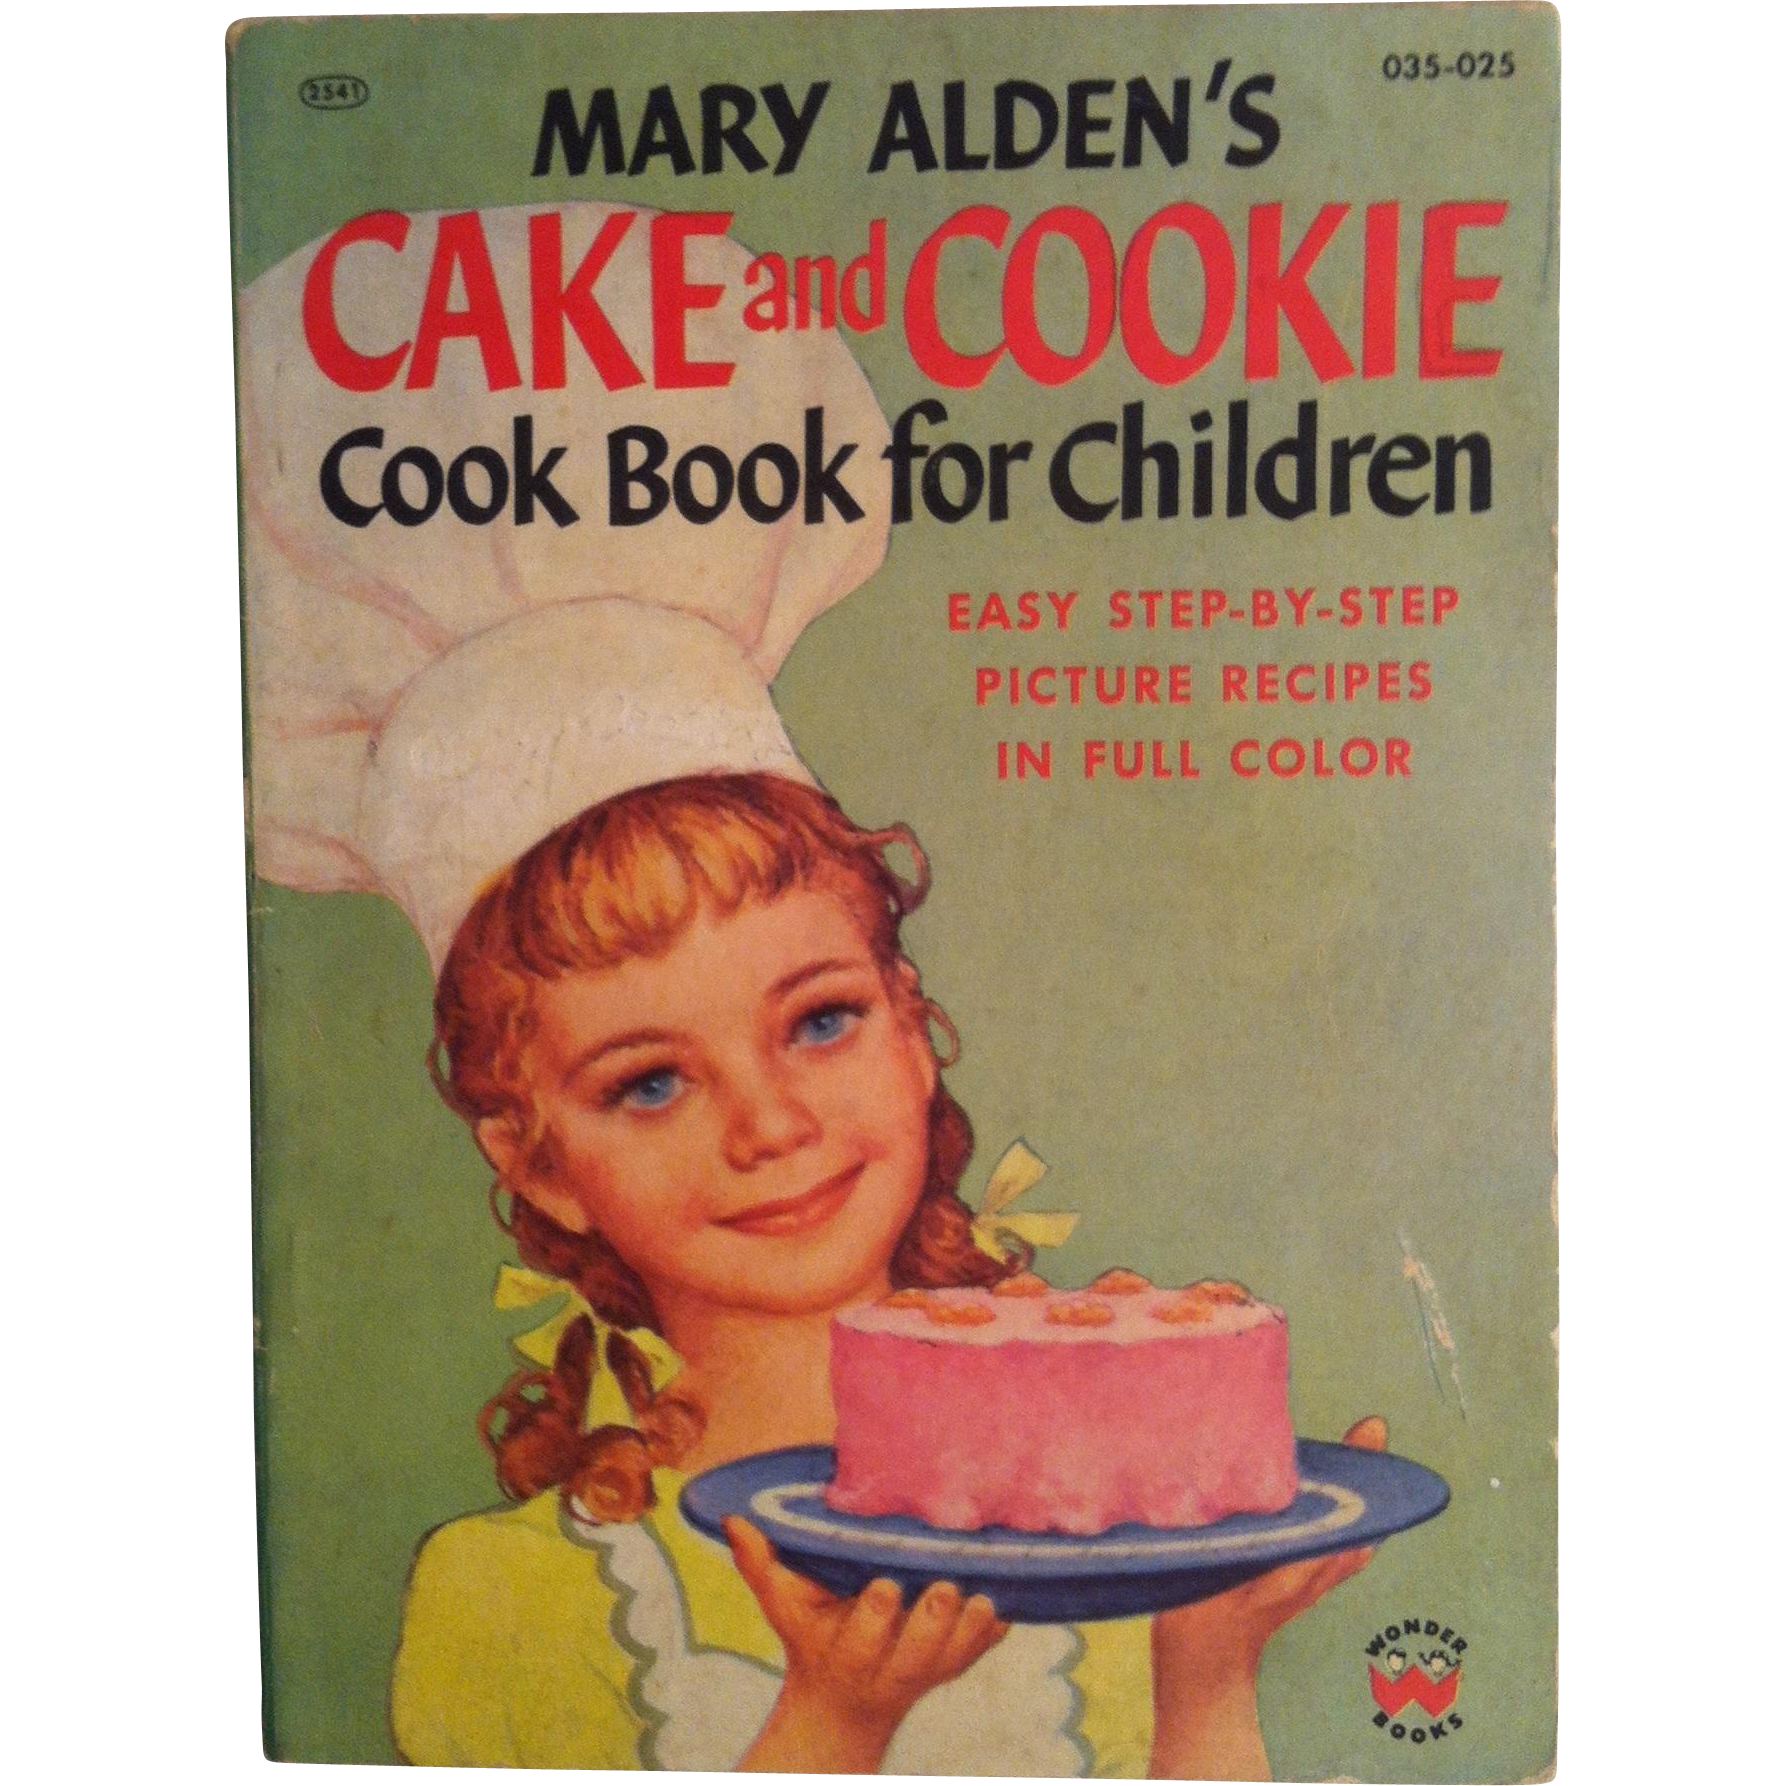 Mary Alden's Cake and Cookie Cook Book For Children ~ 1956 first edition